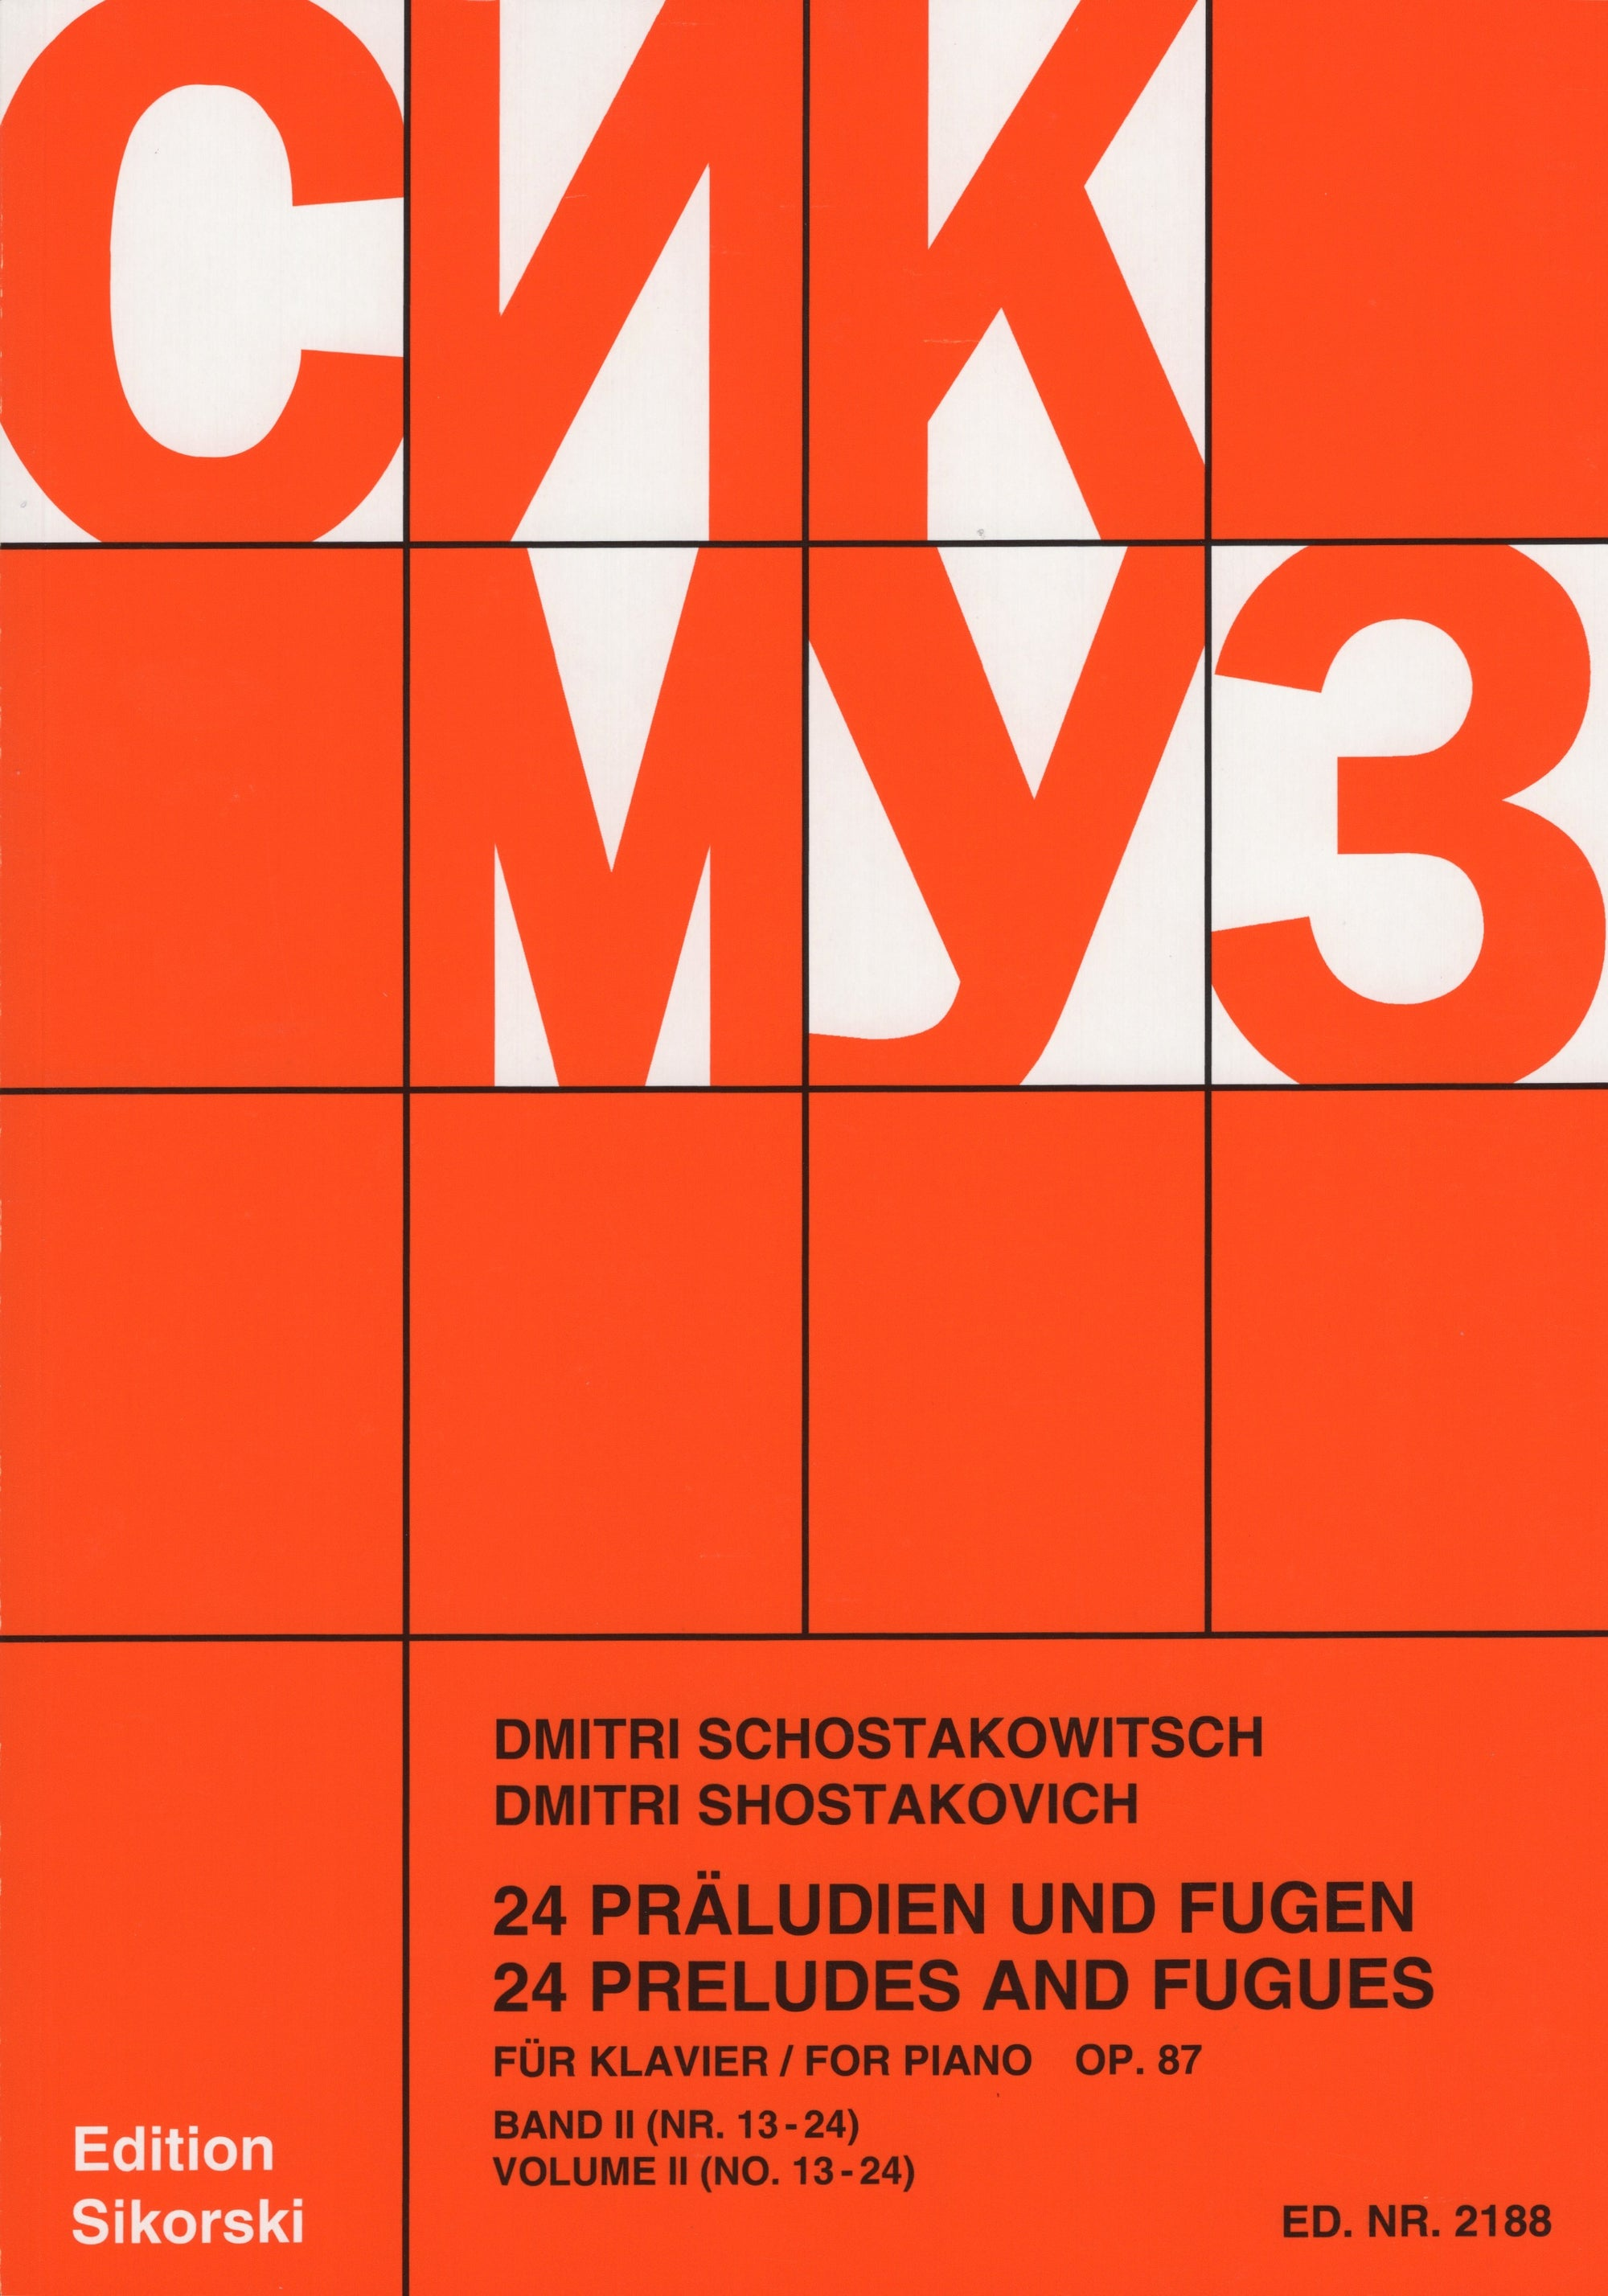 Shostakovich: 24 Preludes and Fugues, Op. 87 - Volume 2 (Nos. 13-24)